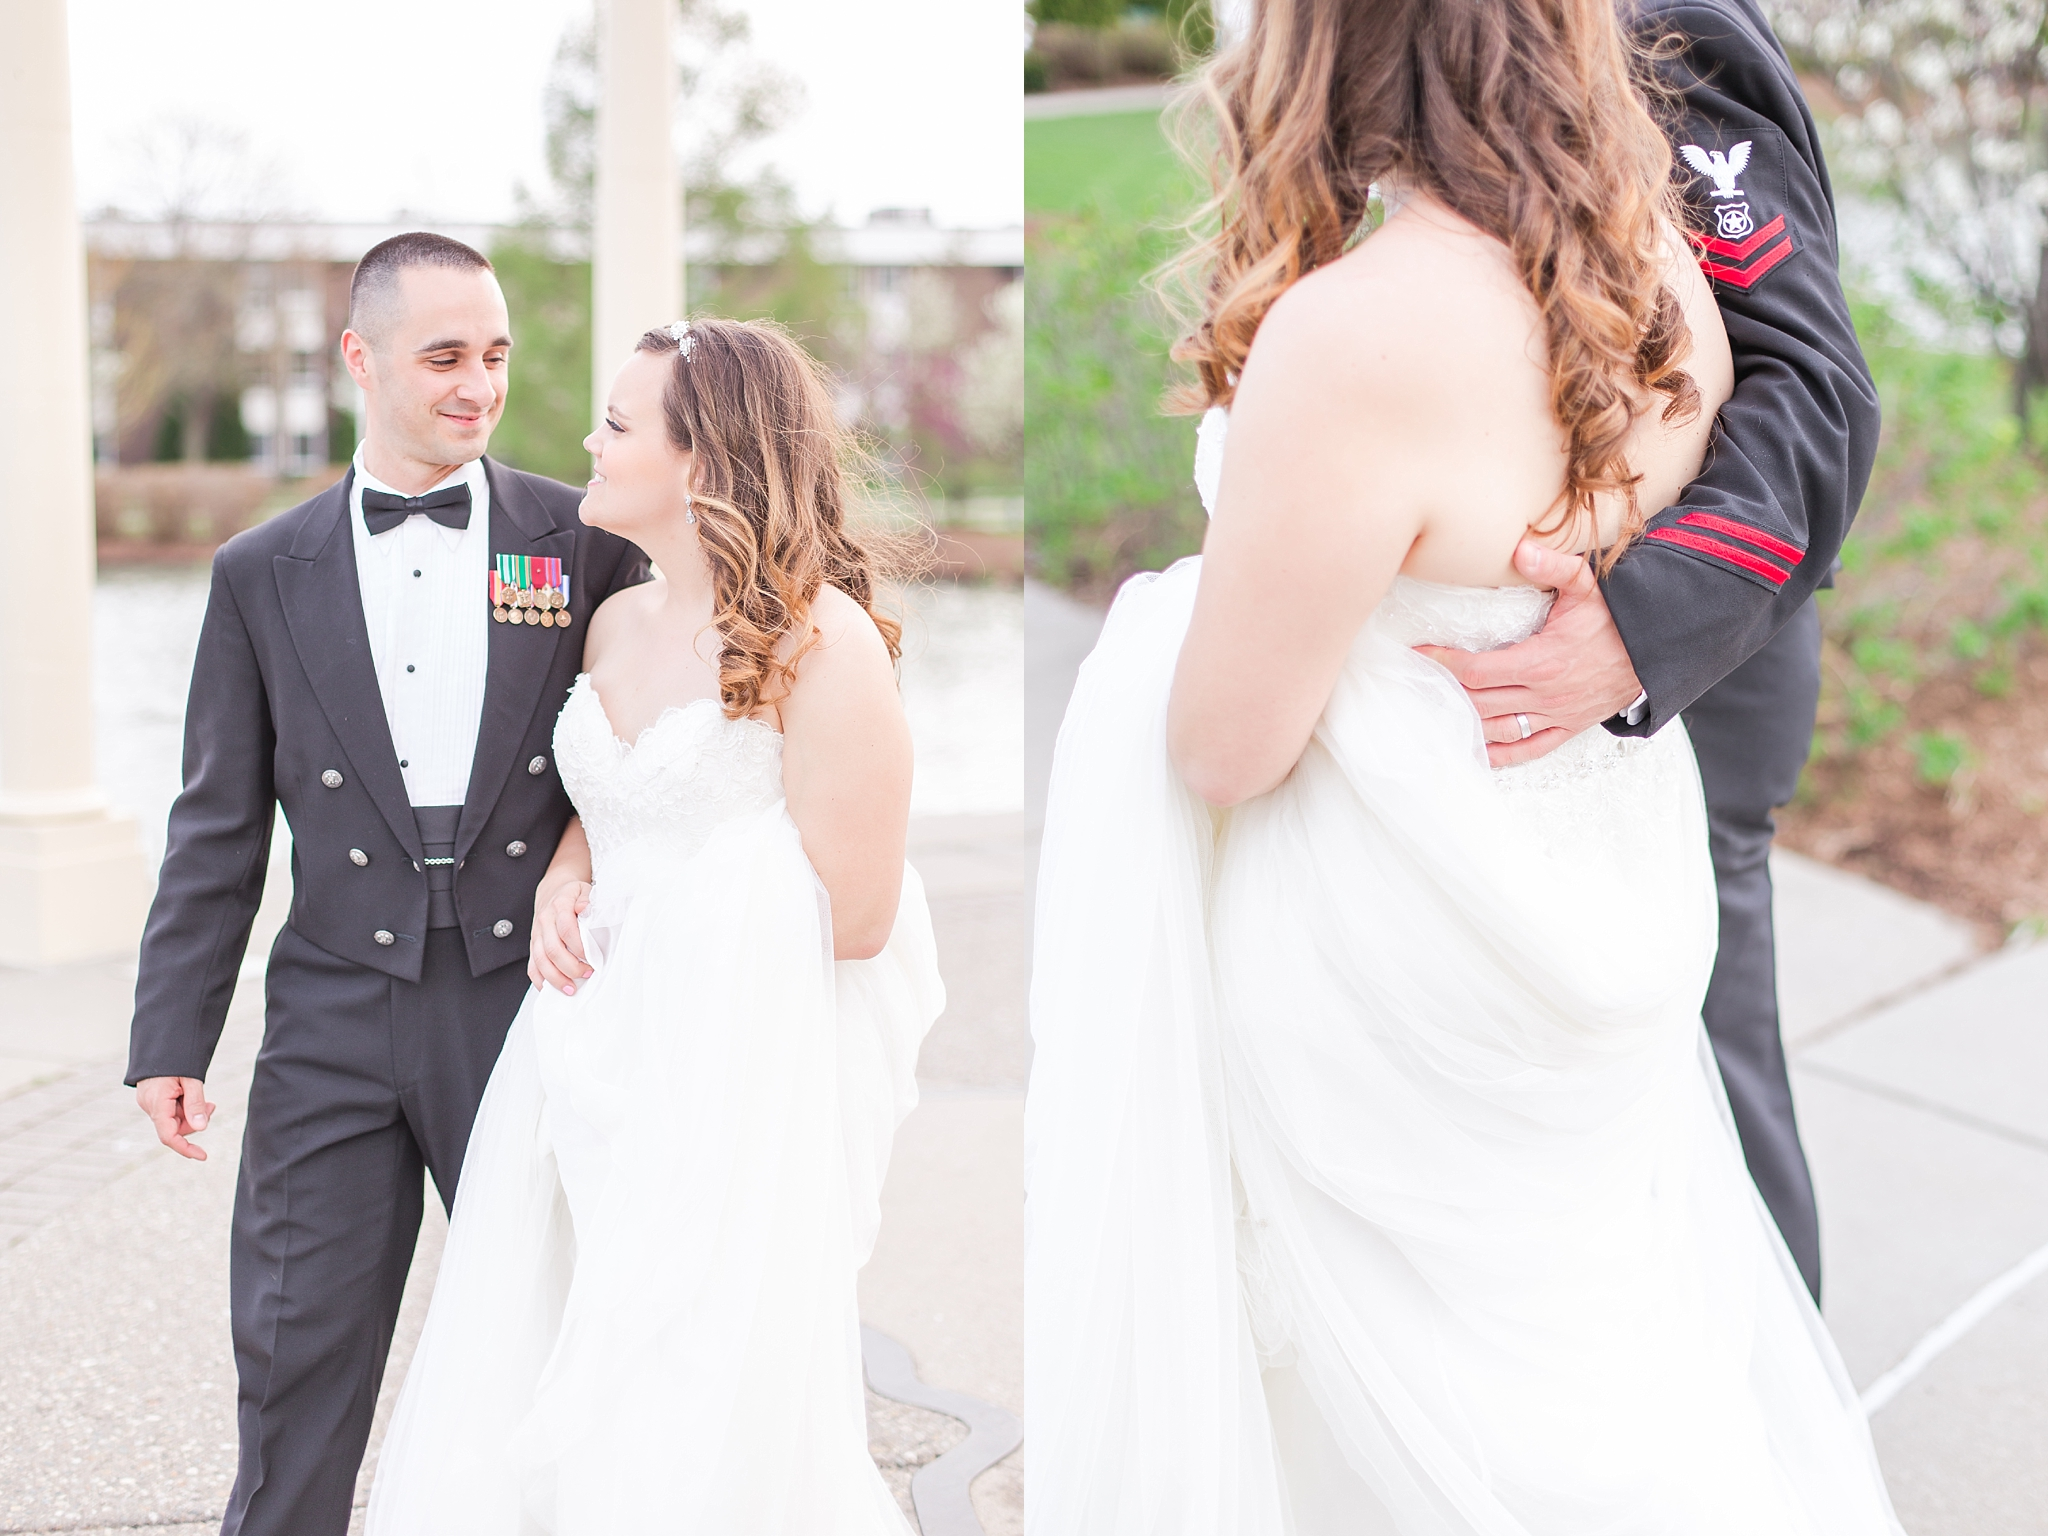 romantic-artful-candid-wedding-photos-in-st-clair-shores-at-the-white-house-wedding-chapel-by-courtney-carolyn-photography_0044.jpg